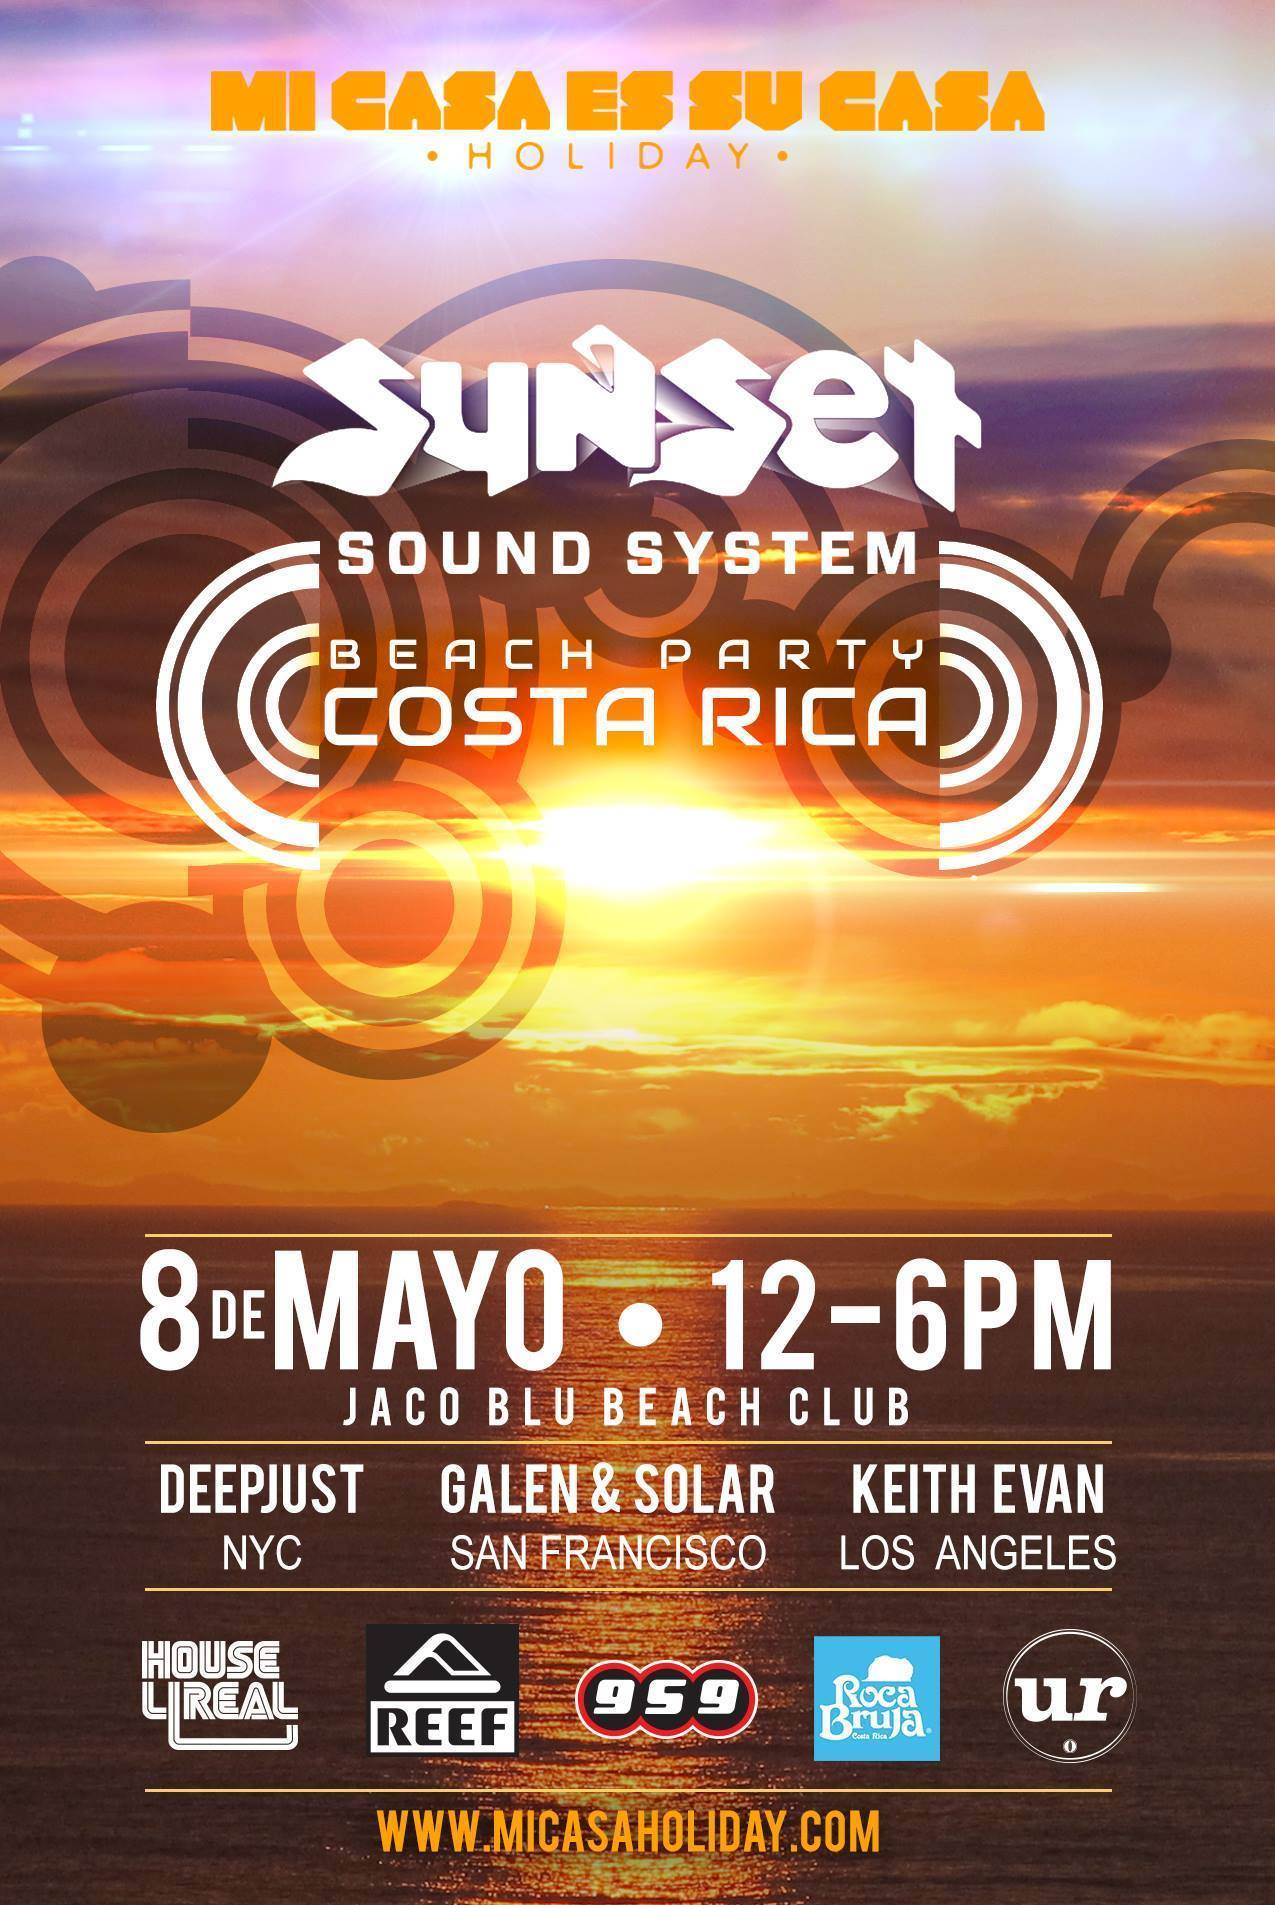 Off to Costa Rica to host a Sunset Beach Party with my compadre Solar. See ya soon Mi Casa Holiday - Costa Rica... If you're in the area come find us at Jaco Blu on Friday!